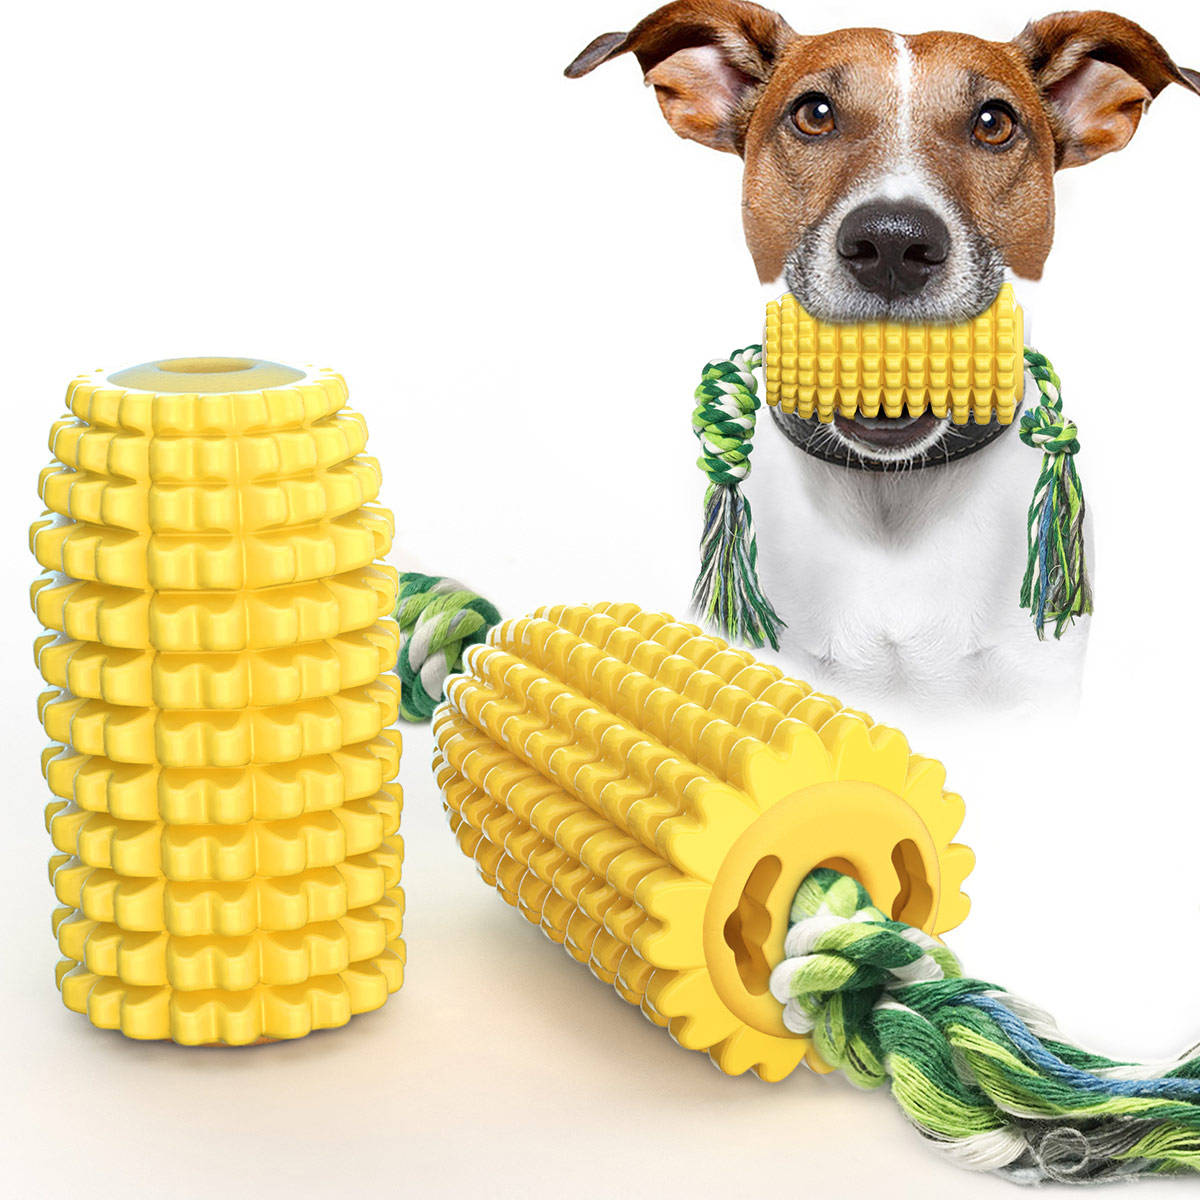 Amazon hot sale dog toy corn molar/grinding stick bite-resistant toothbrush dog chew toy with rope pet toy dog